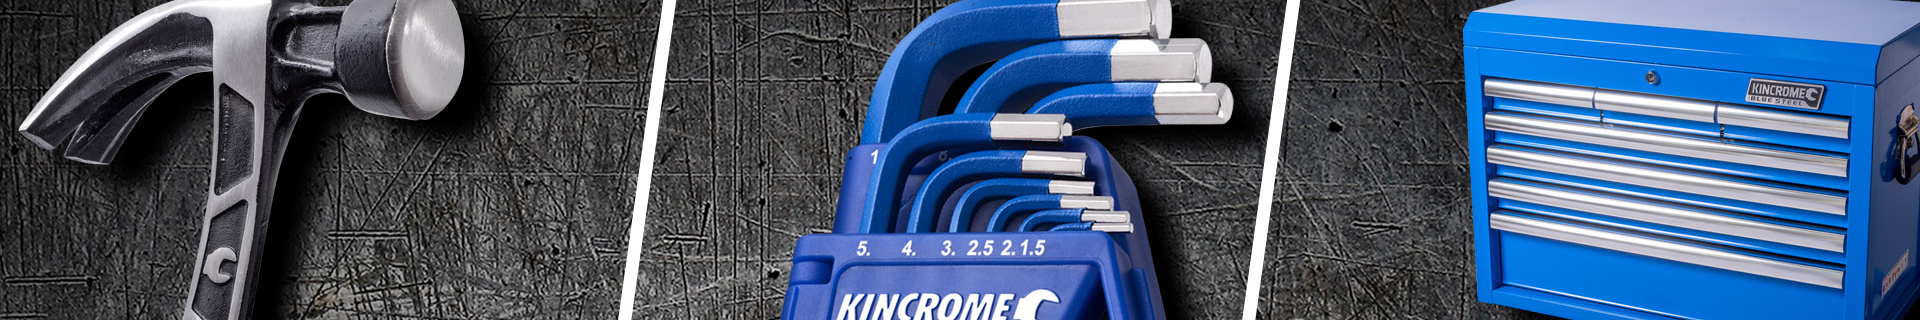 Kincrome socket set and chest trolley.